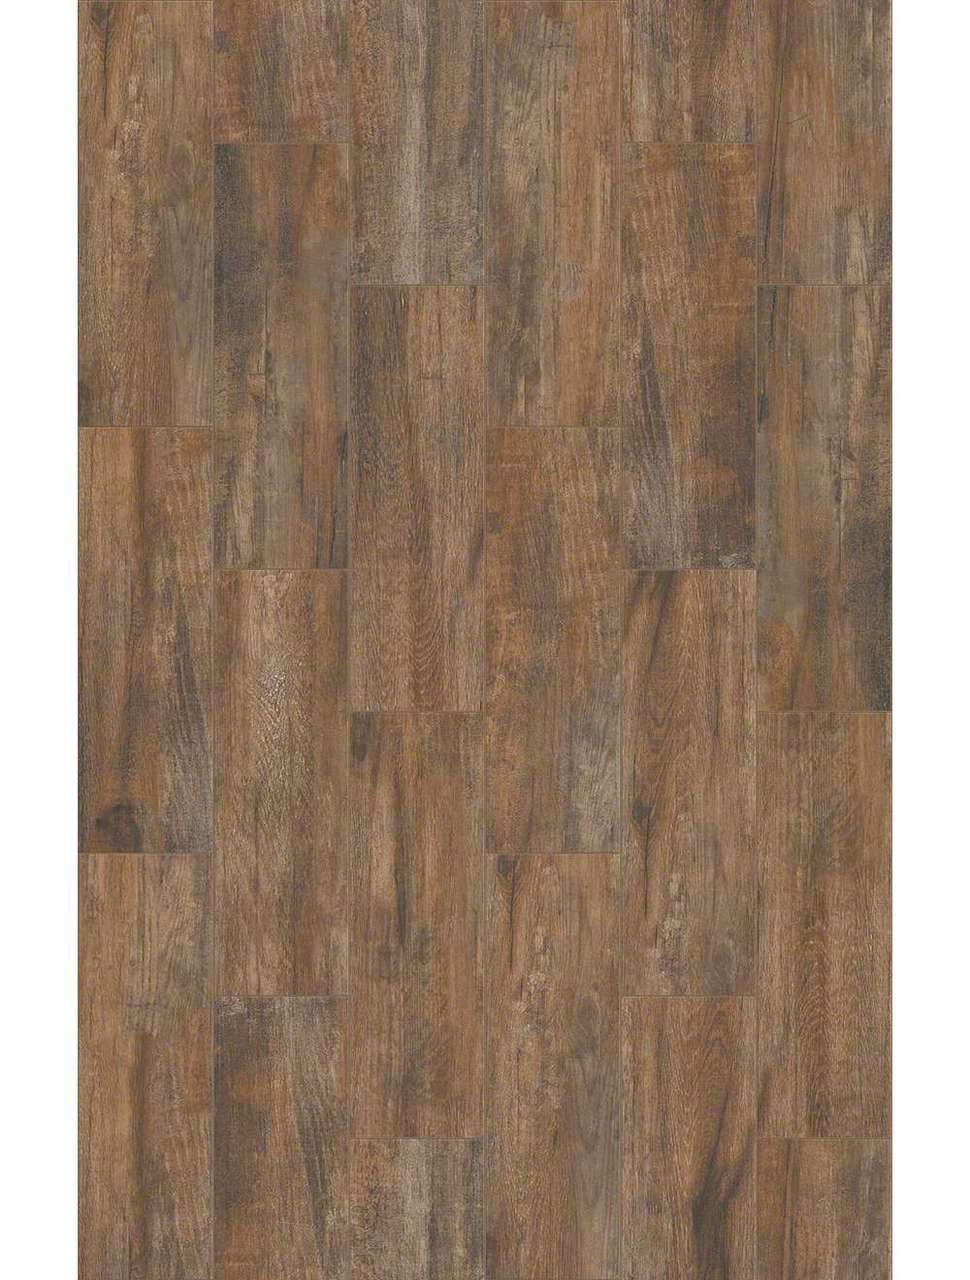 Shaw Olympia Brown 8 X 36 Glazed Ceramic Floor Tile Regal Floor